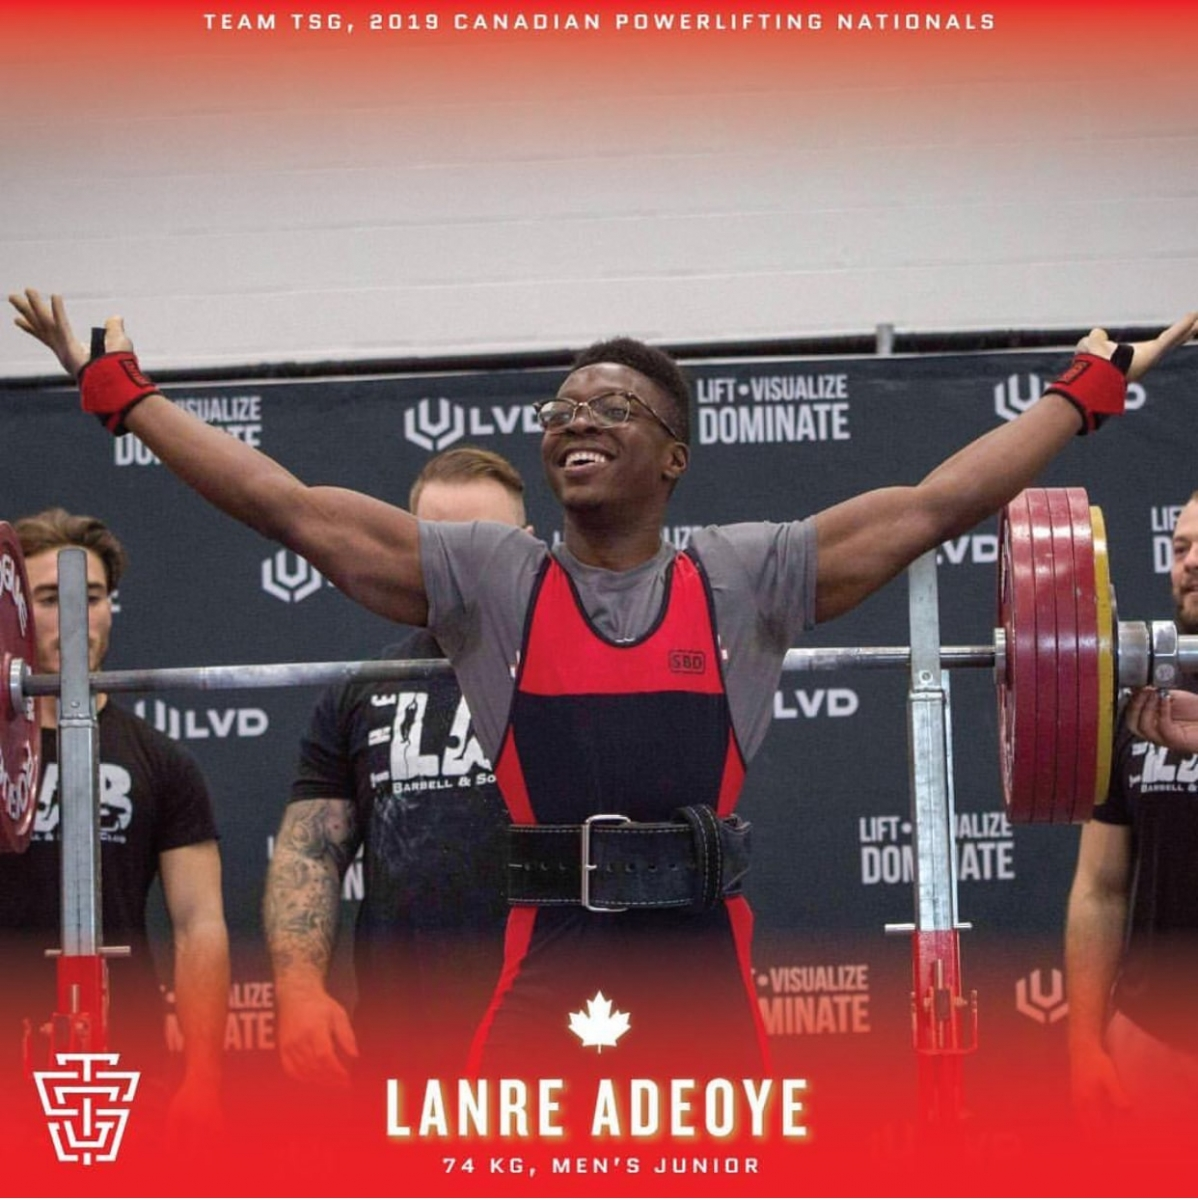 CPU Nationals 2019 Lanre Adeoye